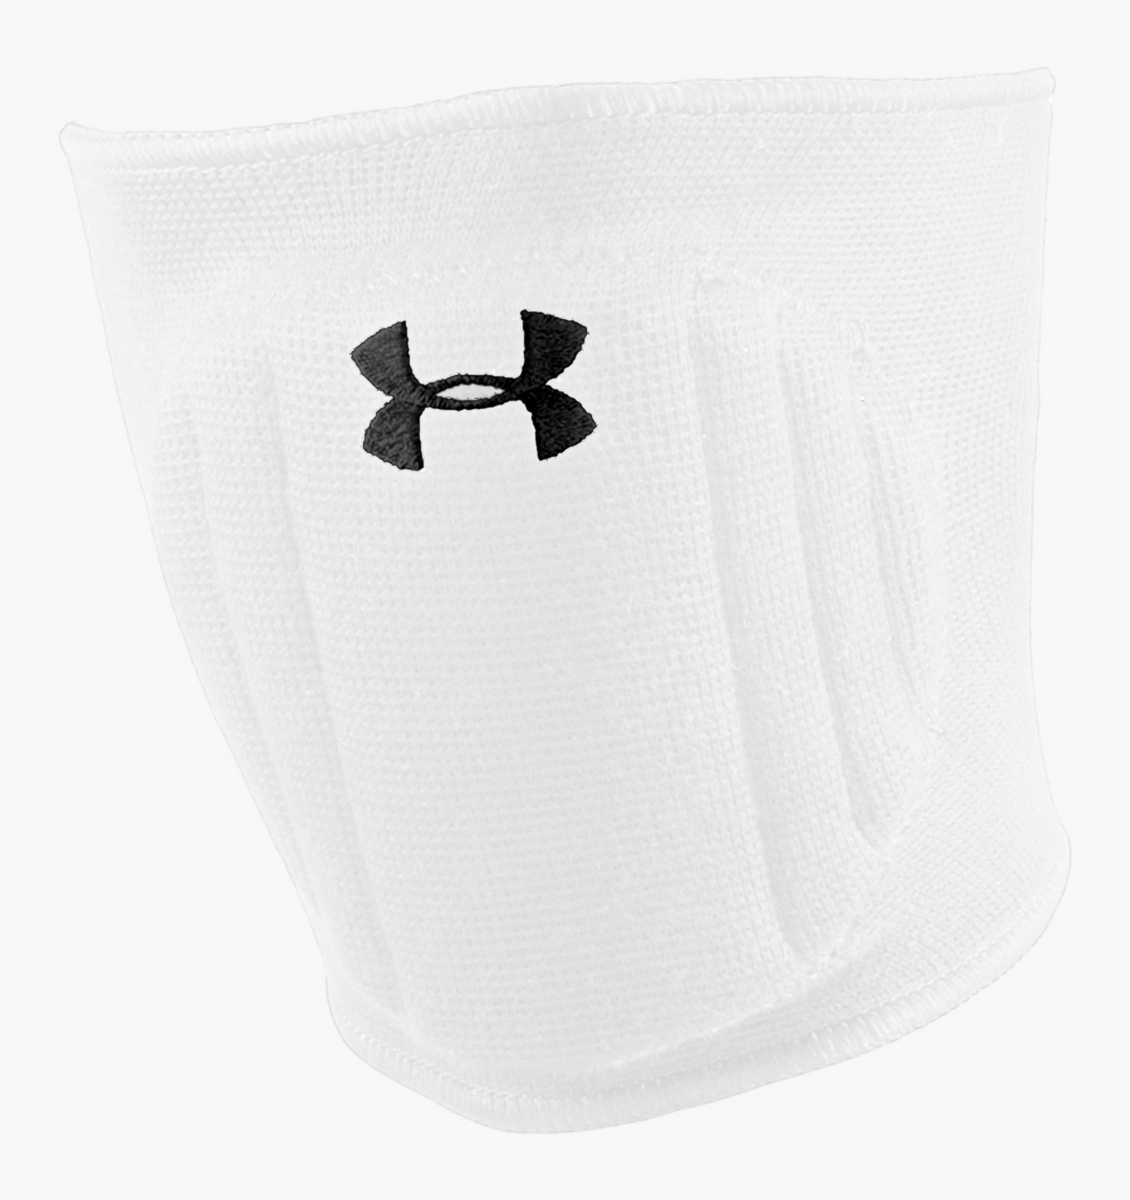 Under Armour Arnour Volleyball Knee Pad